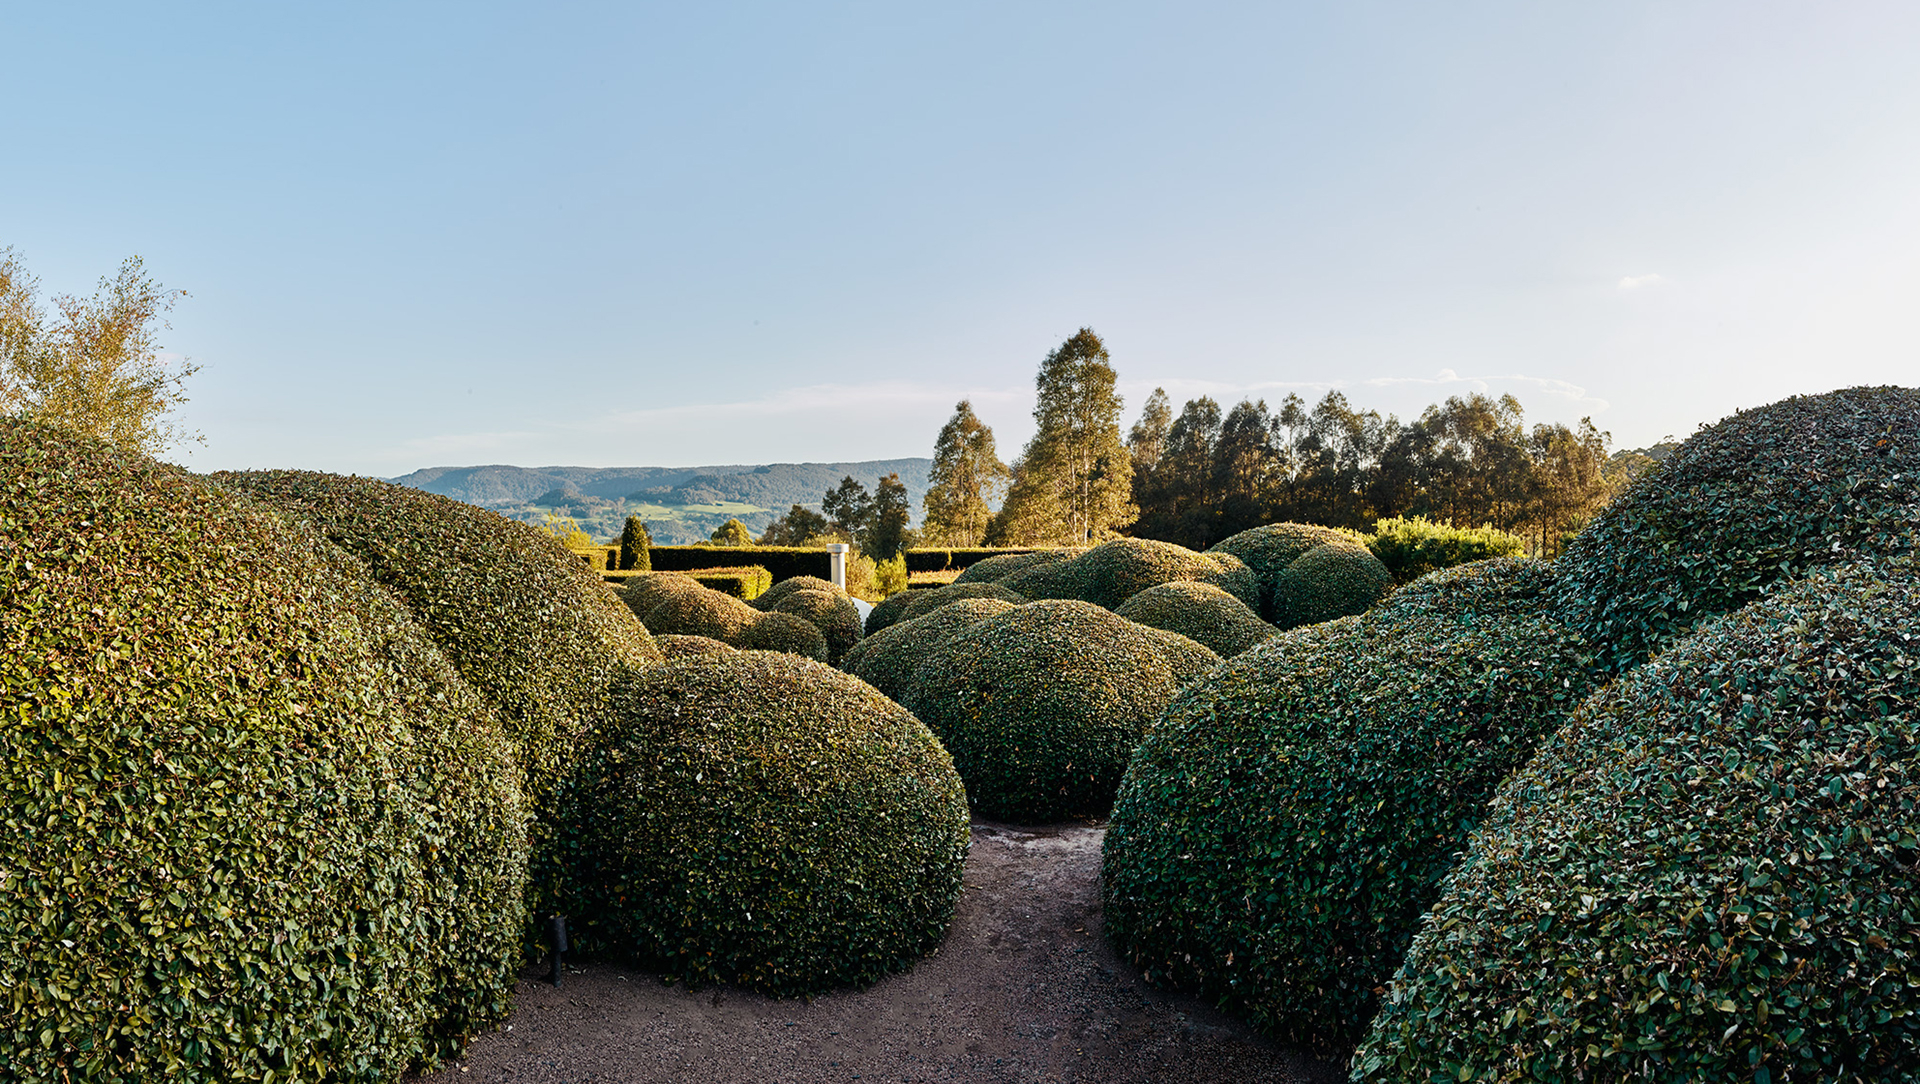 Dome shaped hedges sit in the foreground, with a view of a mountain range in the far distance.